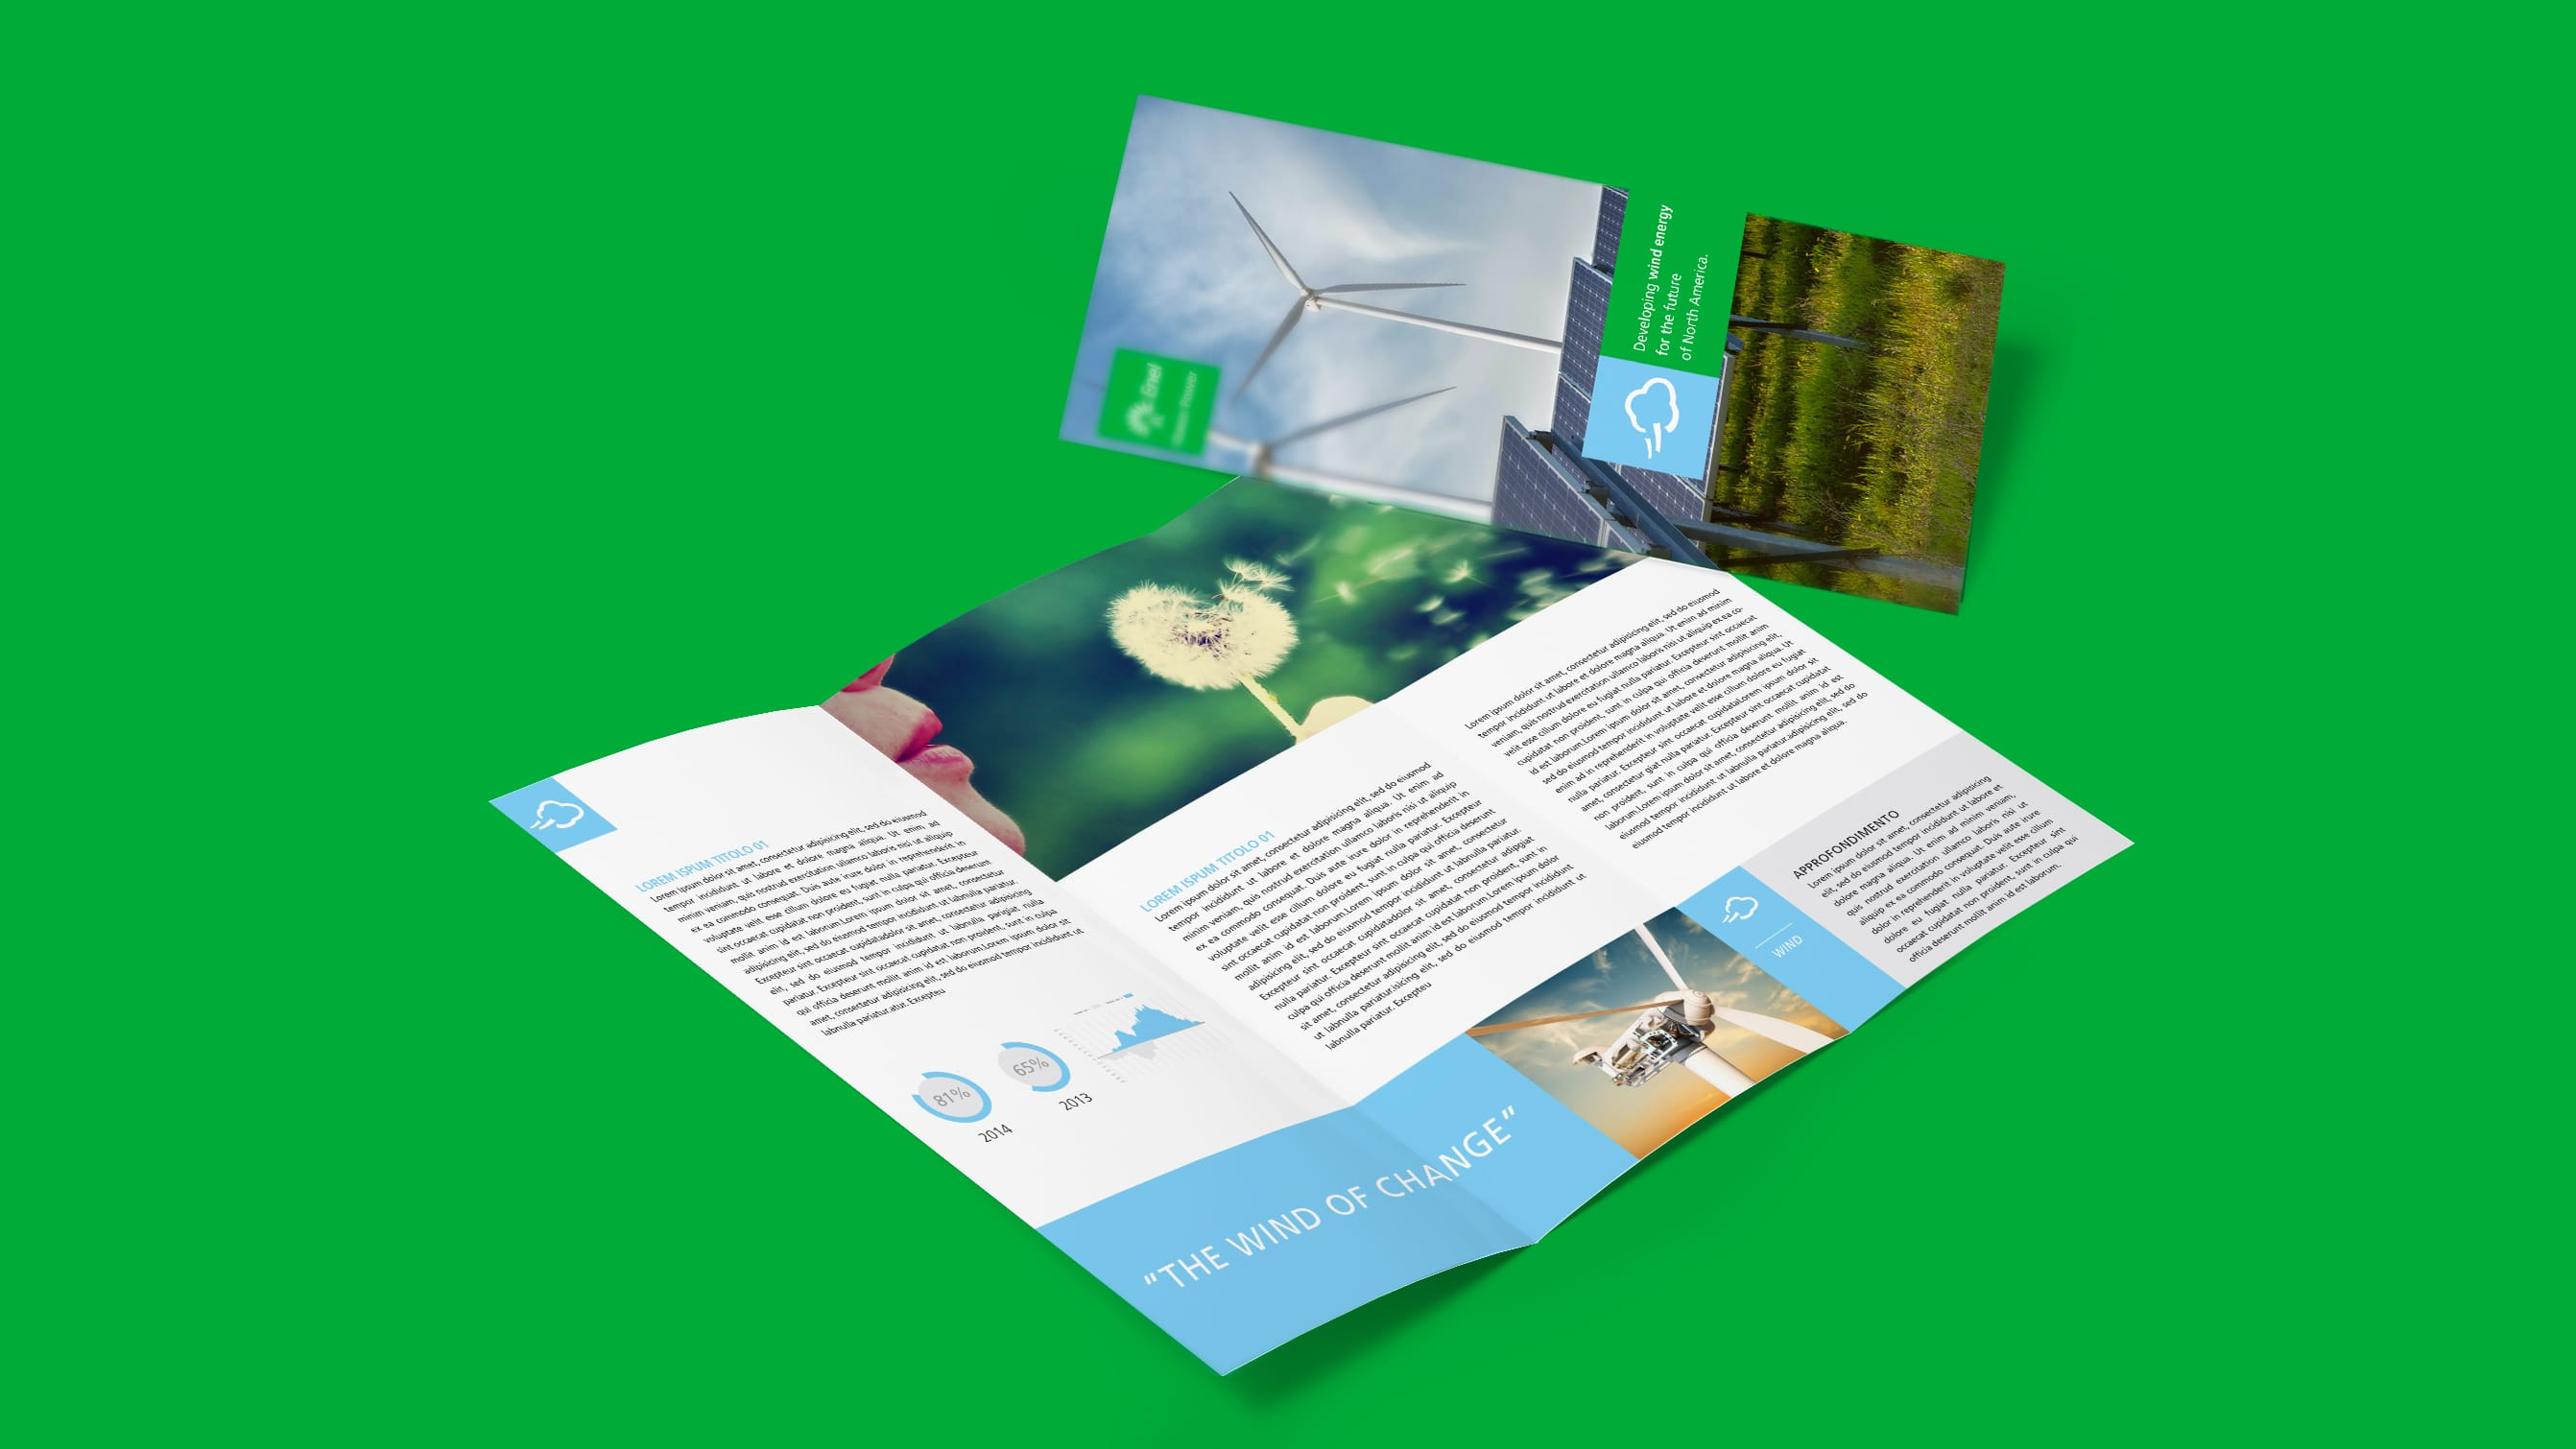 Visual identity and operating instructions to foster internal communication strategy by Luther Dsgn for Enel Green Power